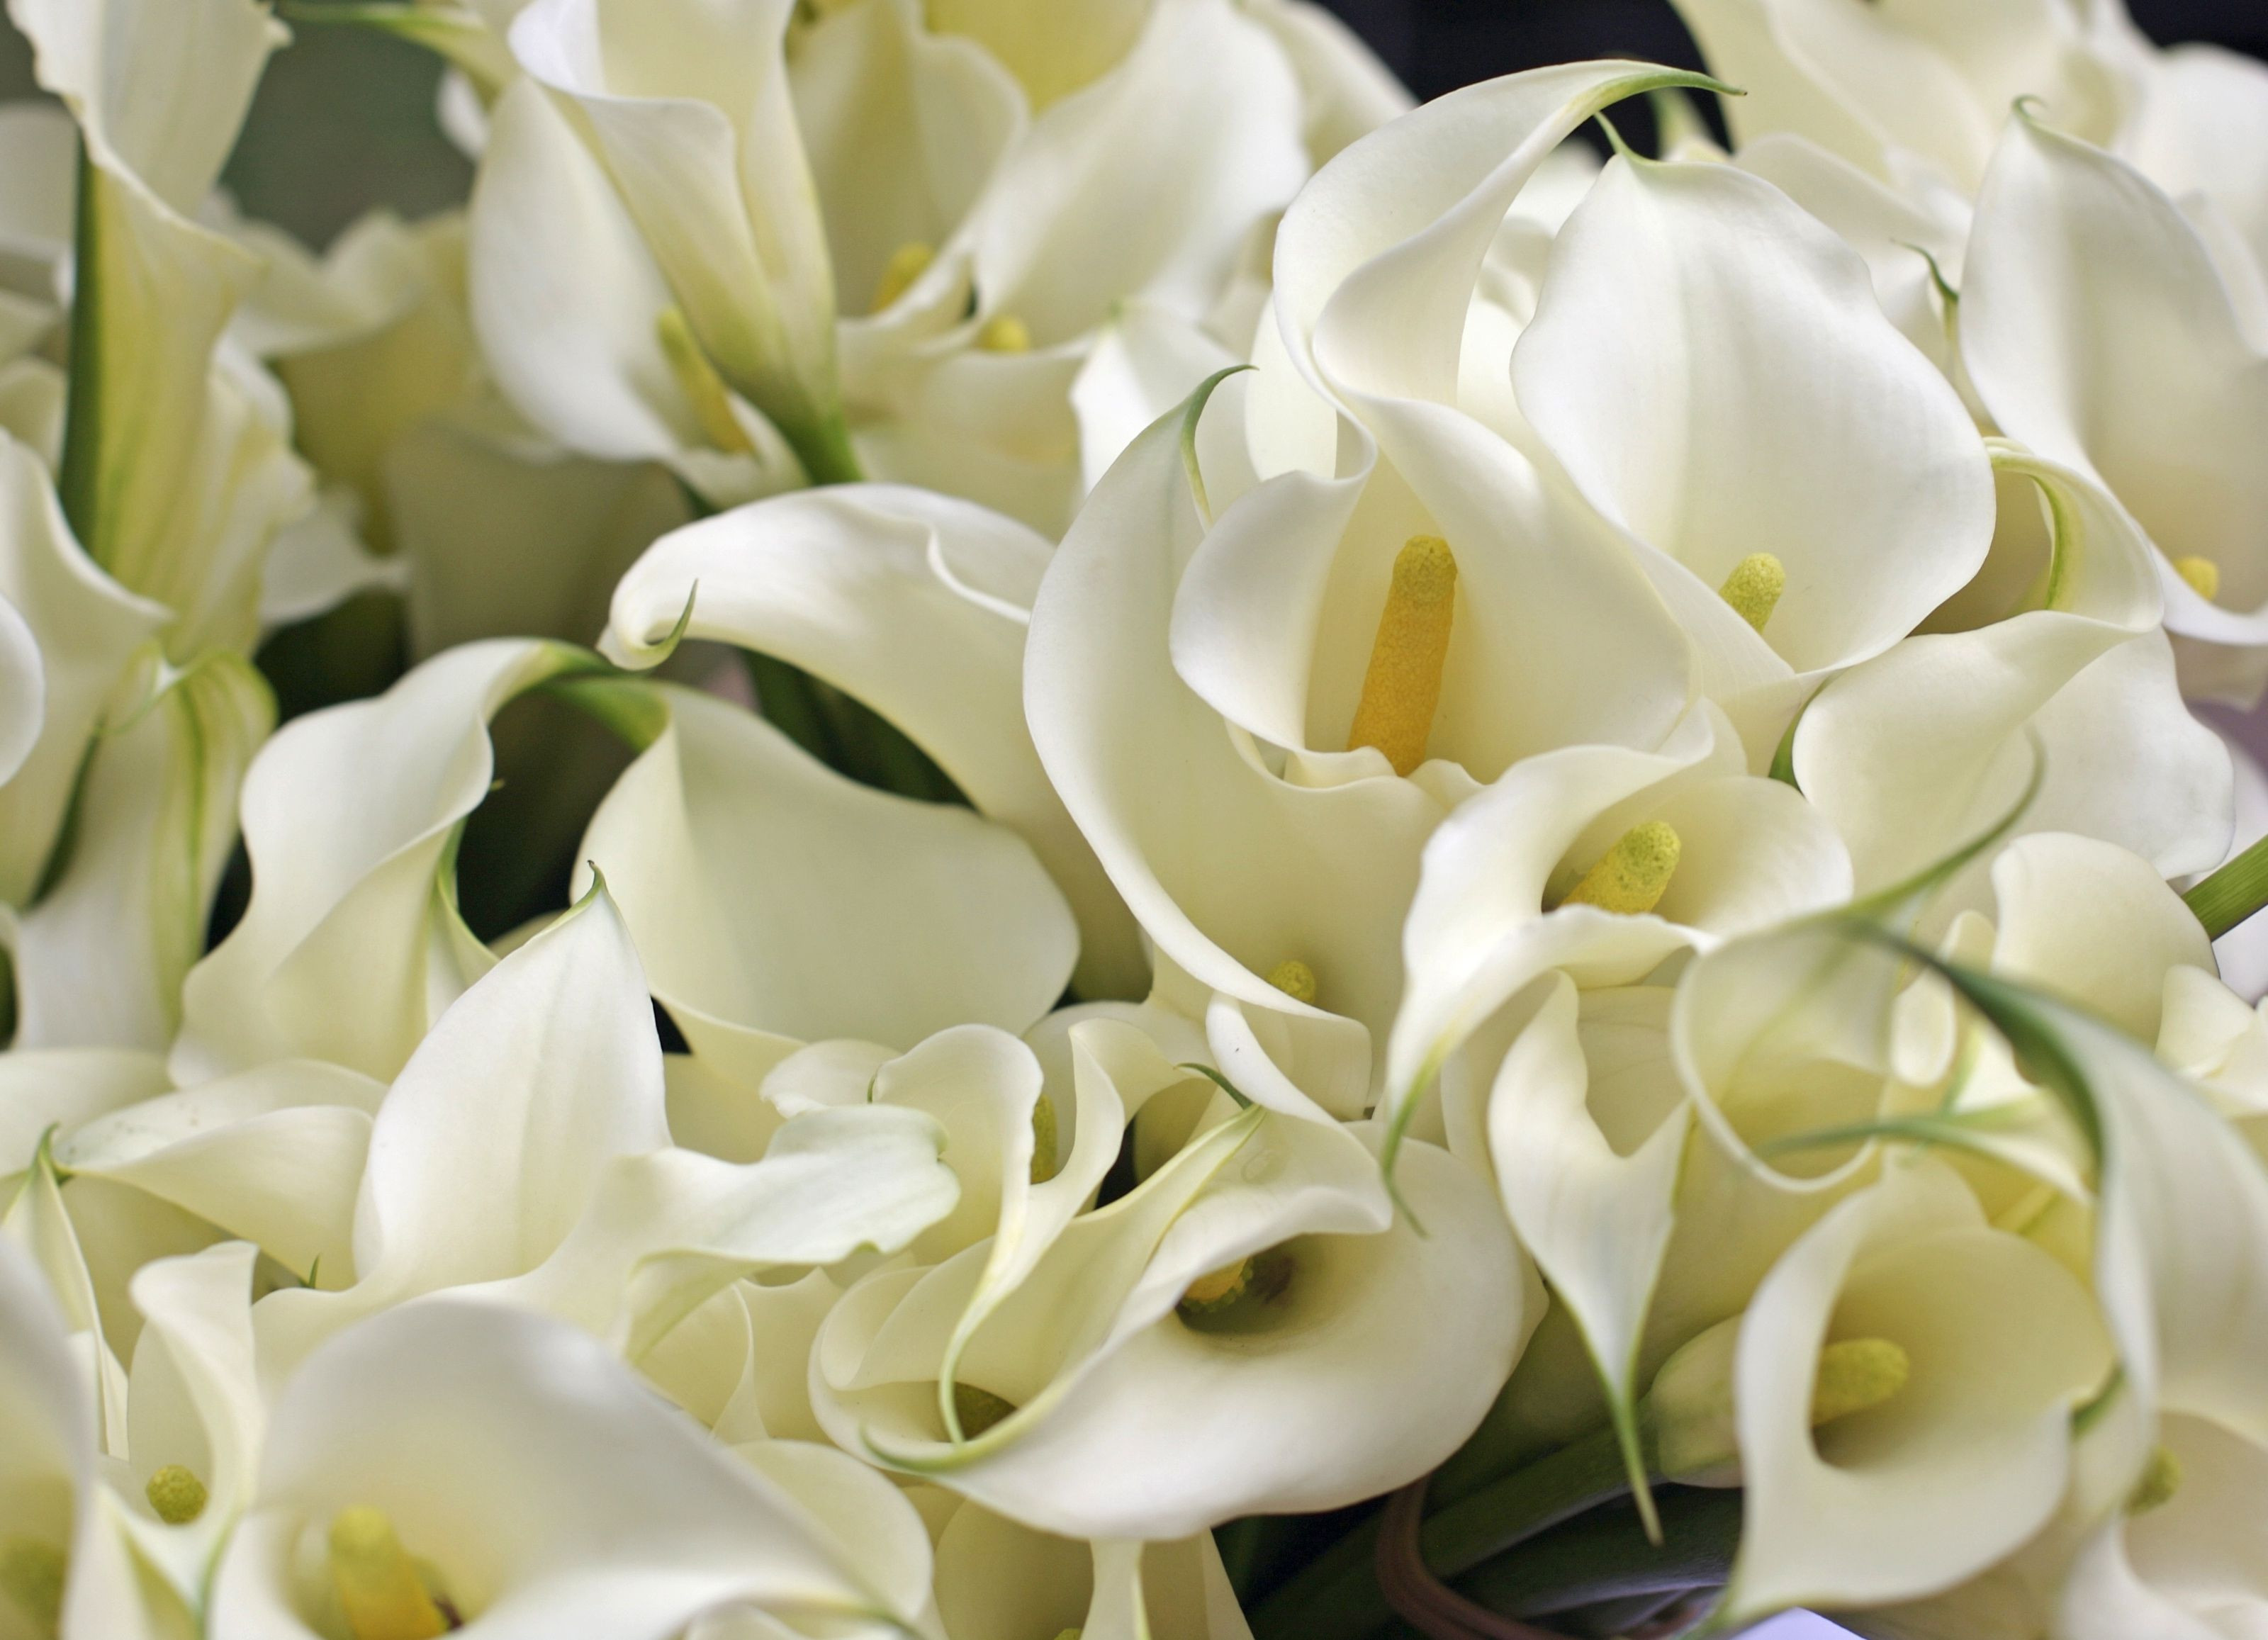 Bulb forcing Vases wholesale Of Growing and Care Of Indoor Calla Lily Indoors with Calla Lillies 118212201 58ed384a3df78cd3fce5a363